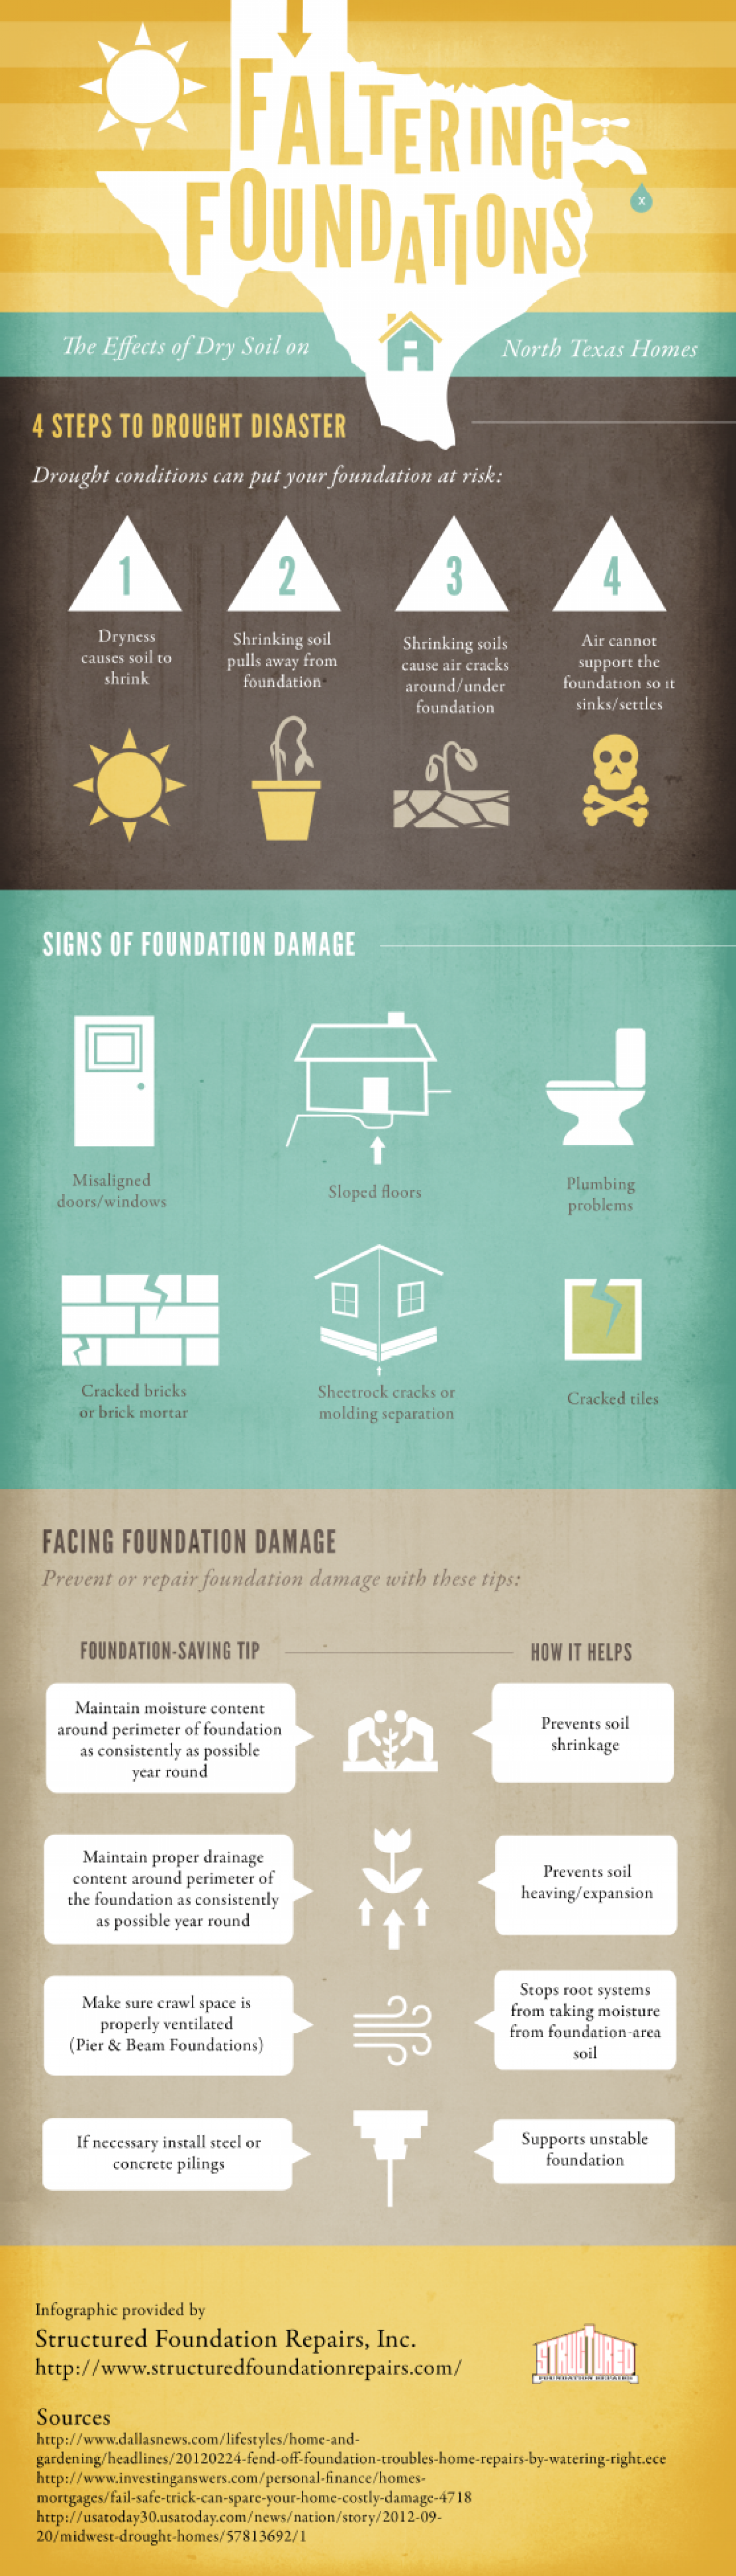 Faltering Foundations Infographic